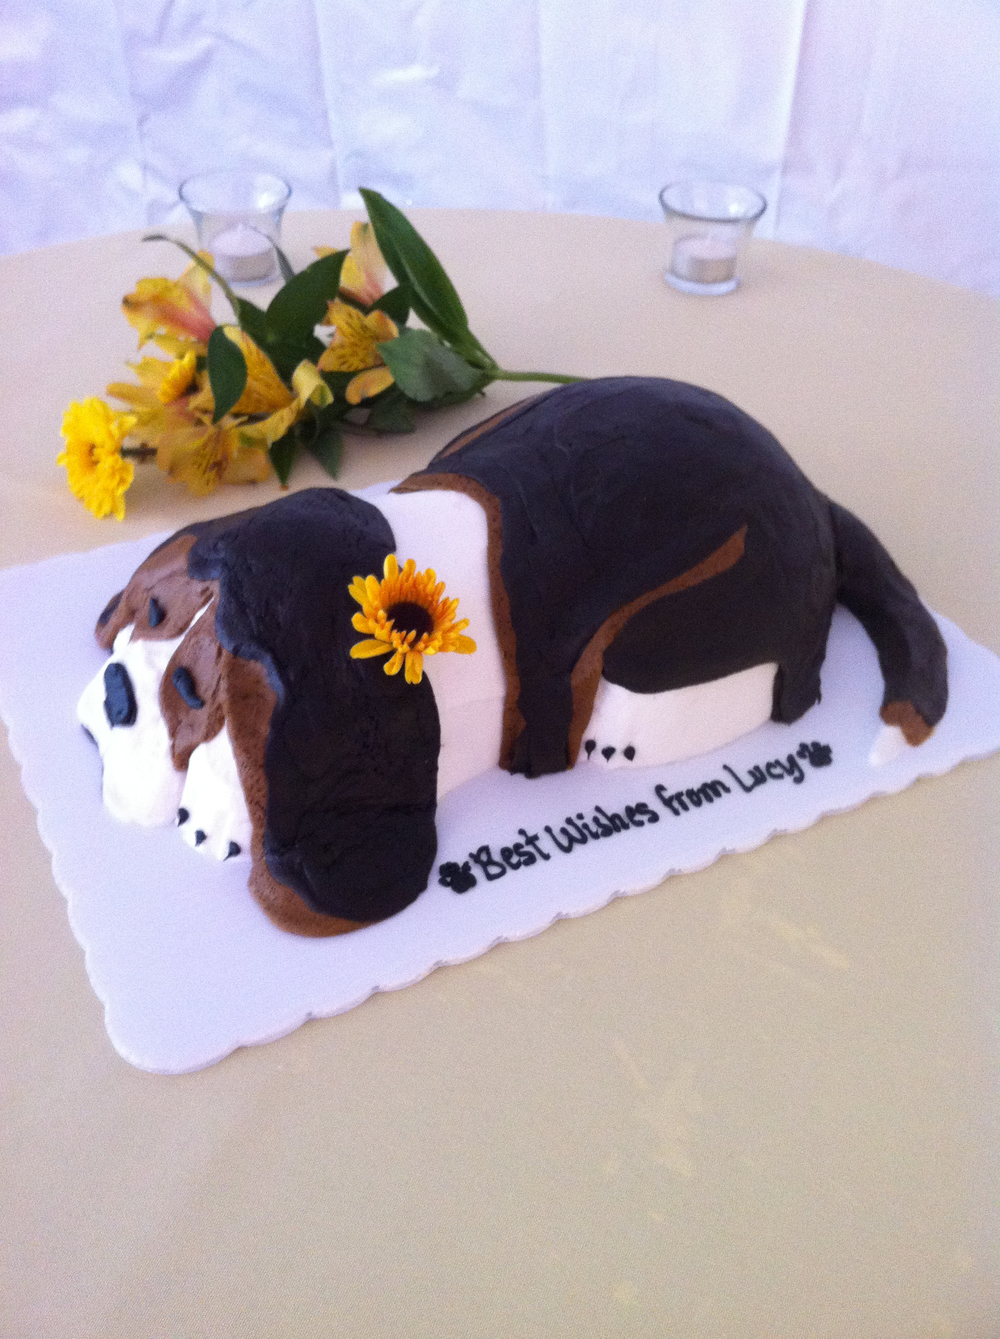 Beagle Shaped Cake